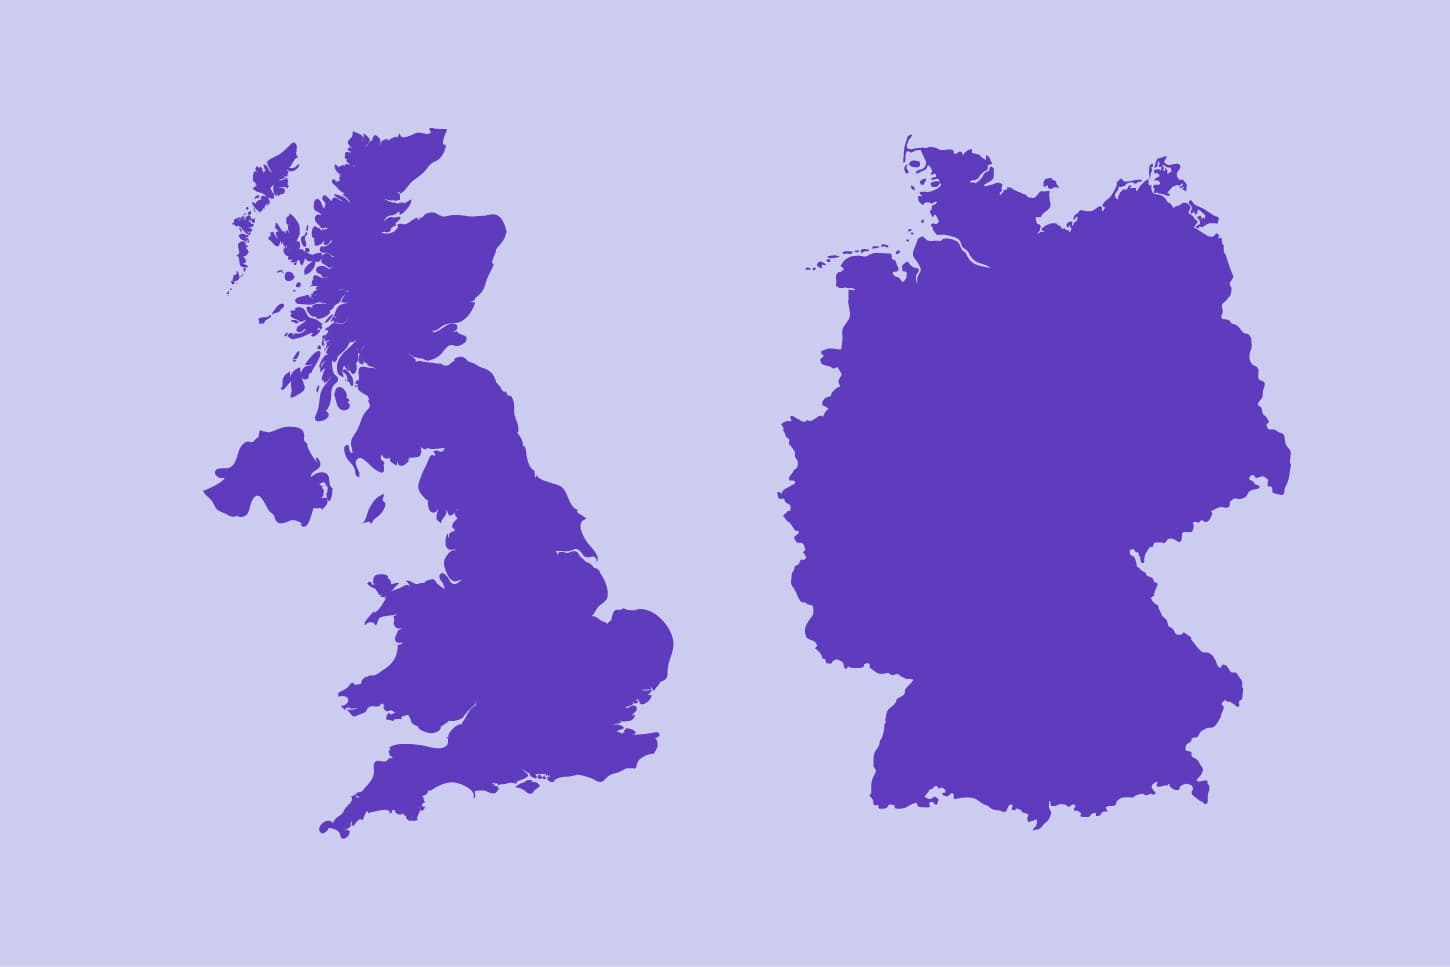 Purple UK and Germany graphic